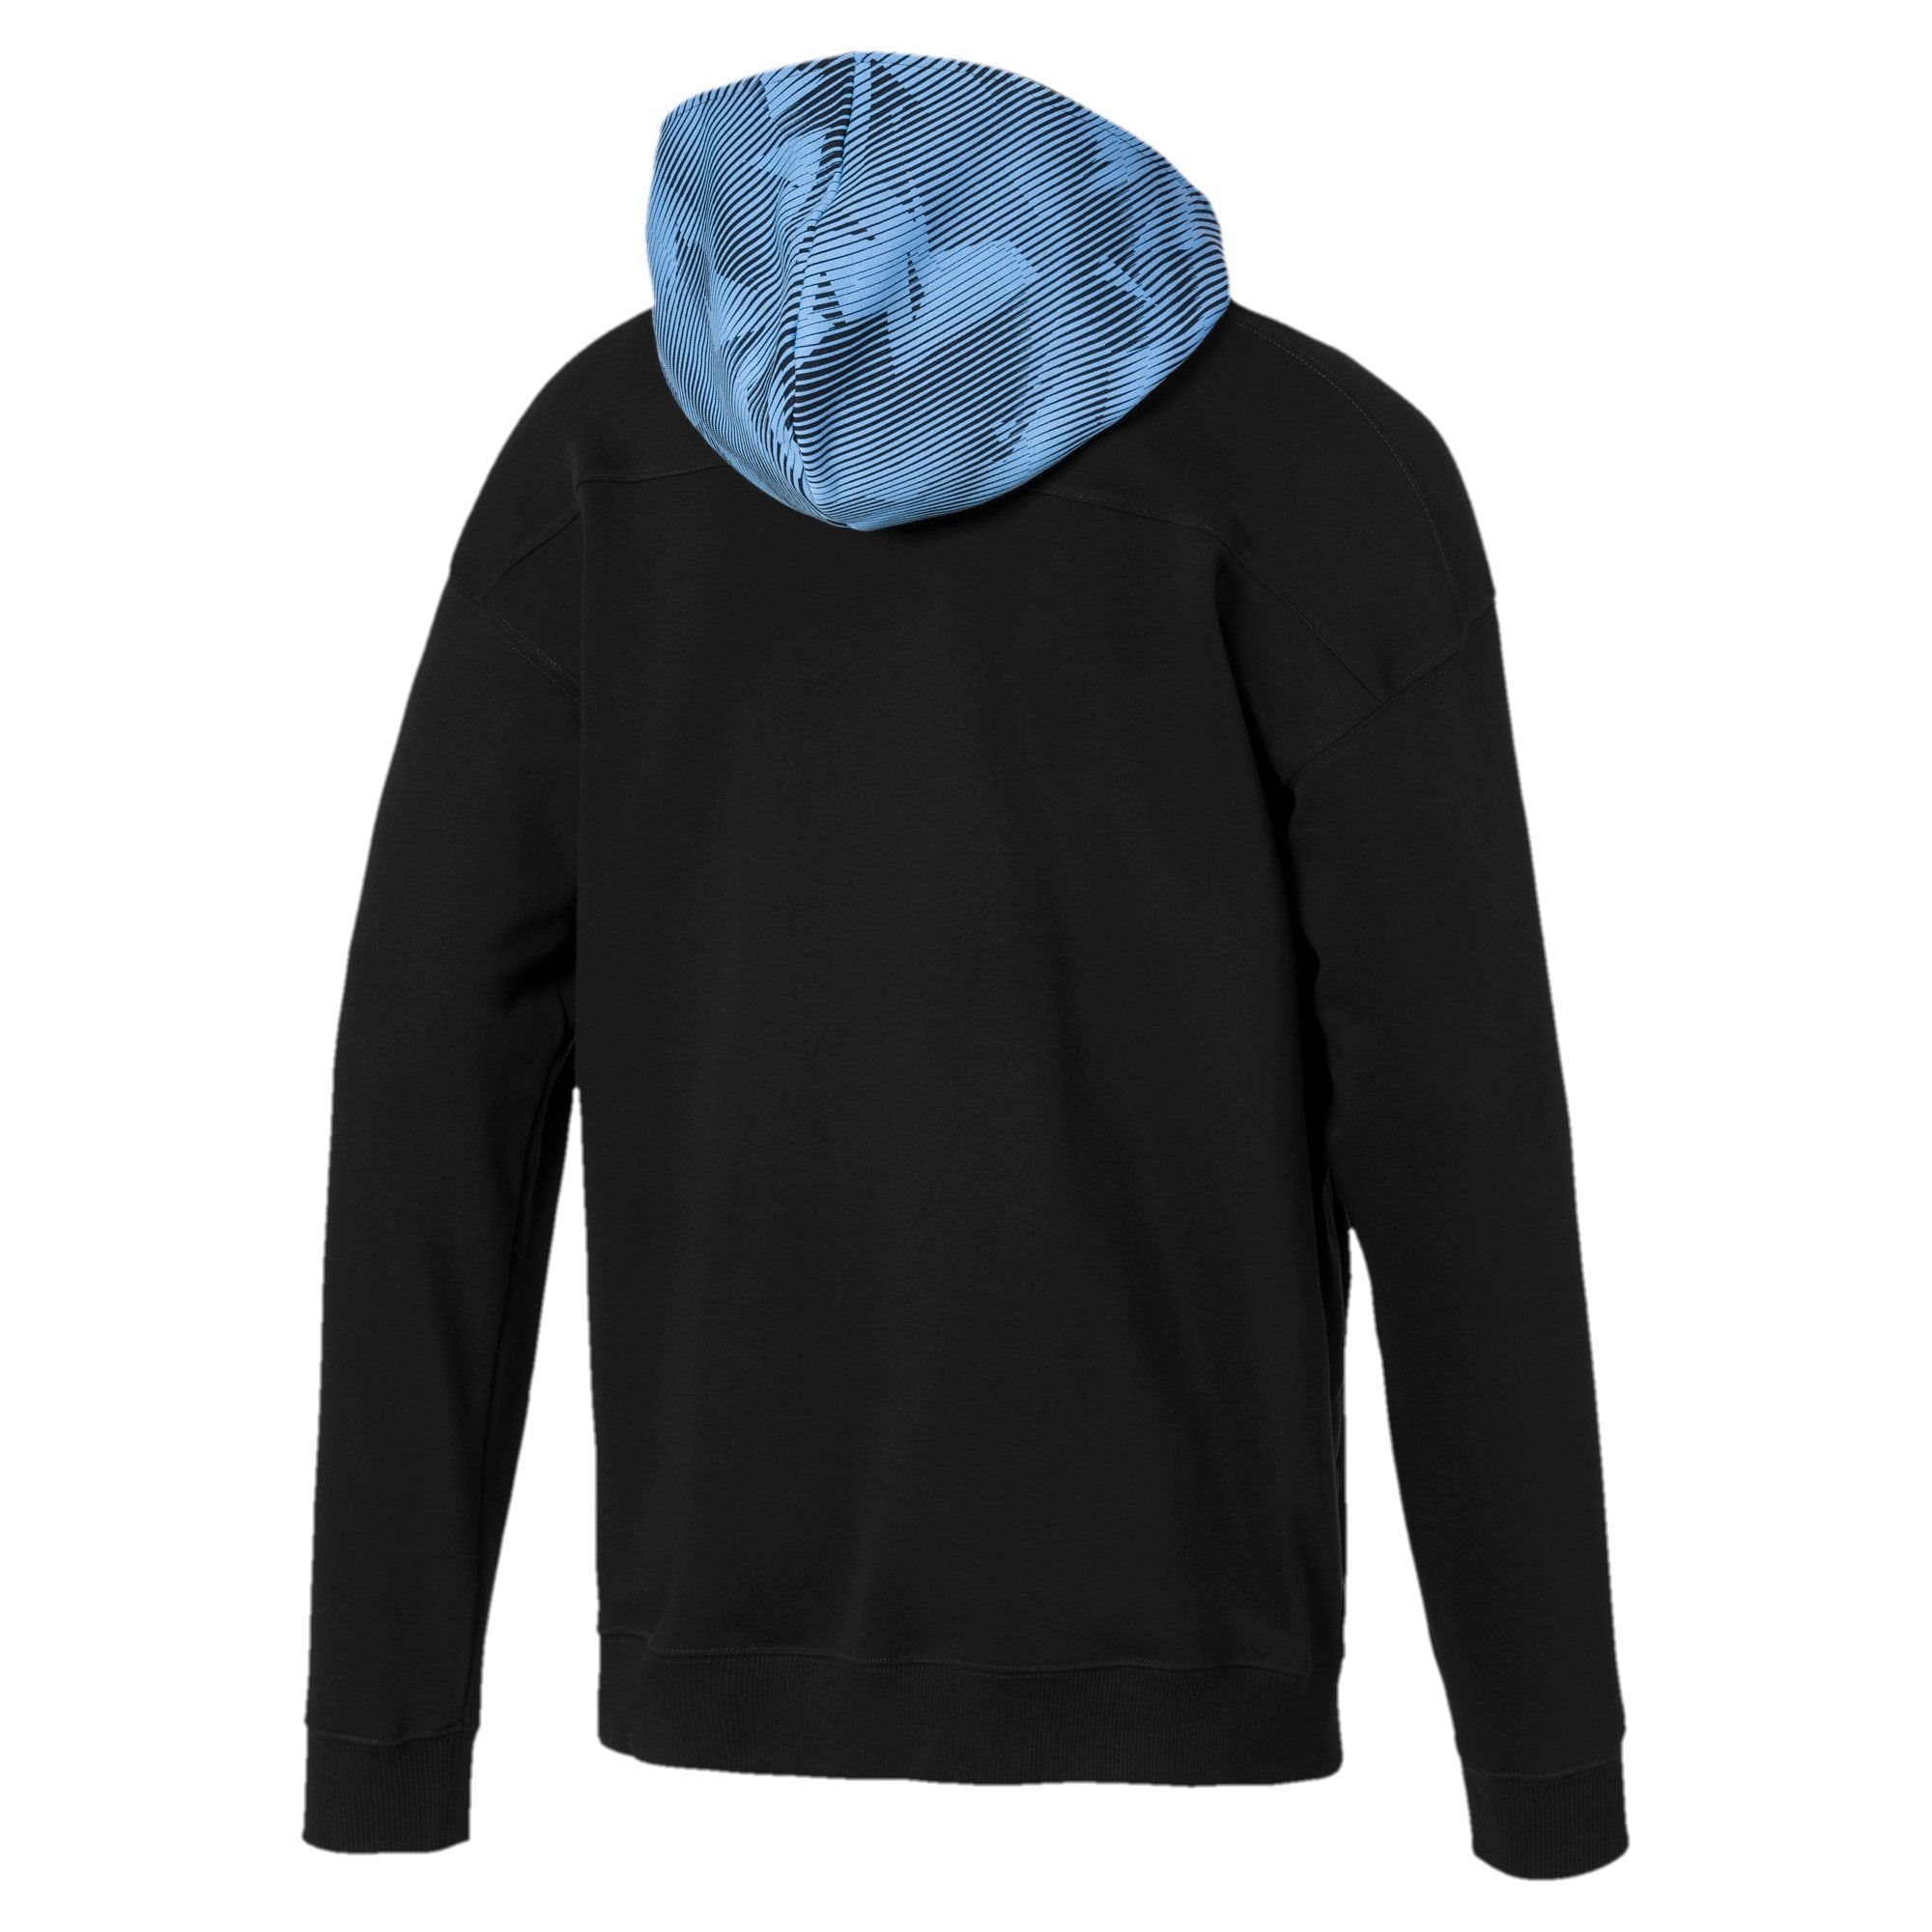 Thumbnail 2 of Manchester City Casuals Herren Kapuzenjacke, Puma Black-Team Light Blue, medium